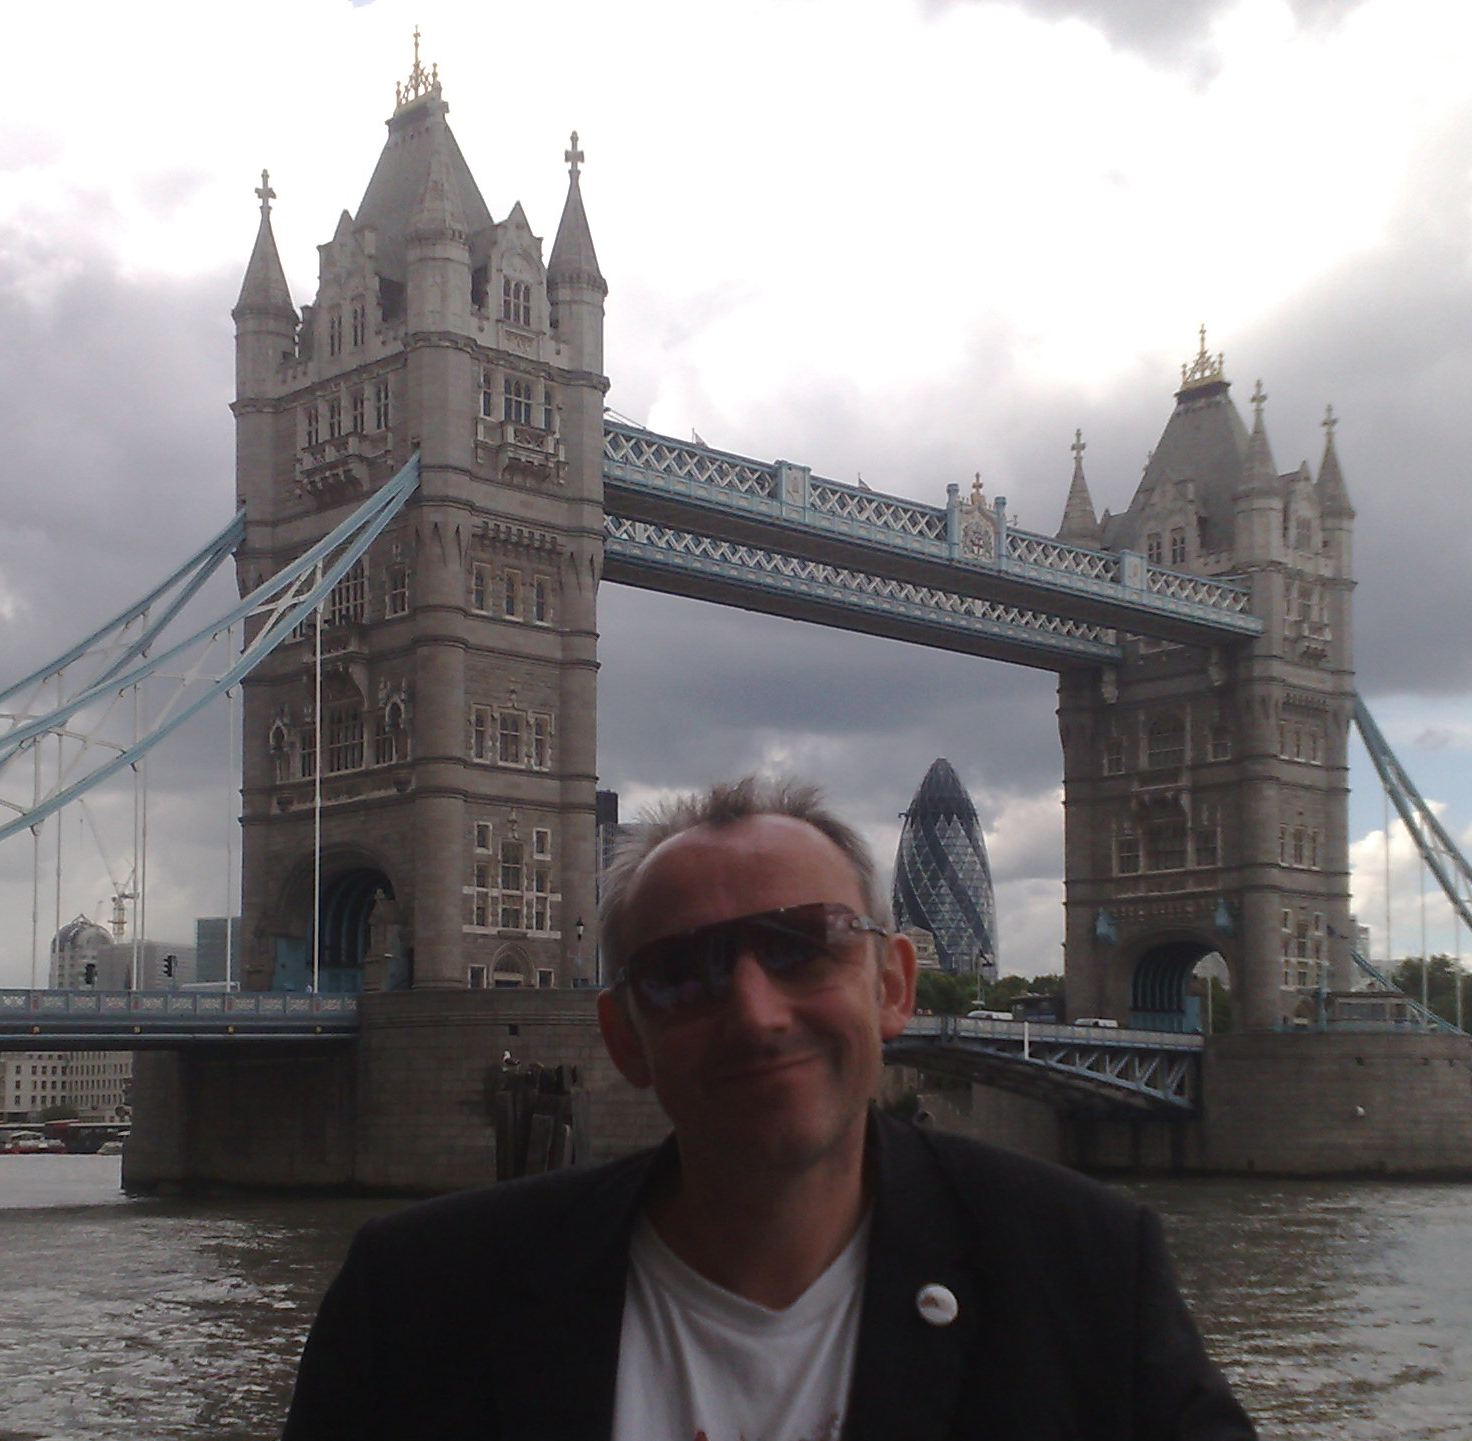 Keith Mansfield, Tower Bridge and the Spirit of London on publication day